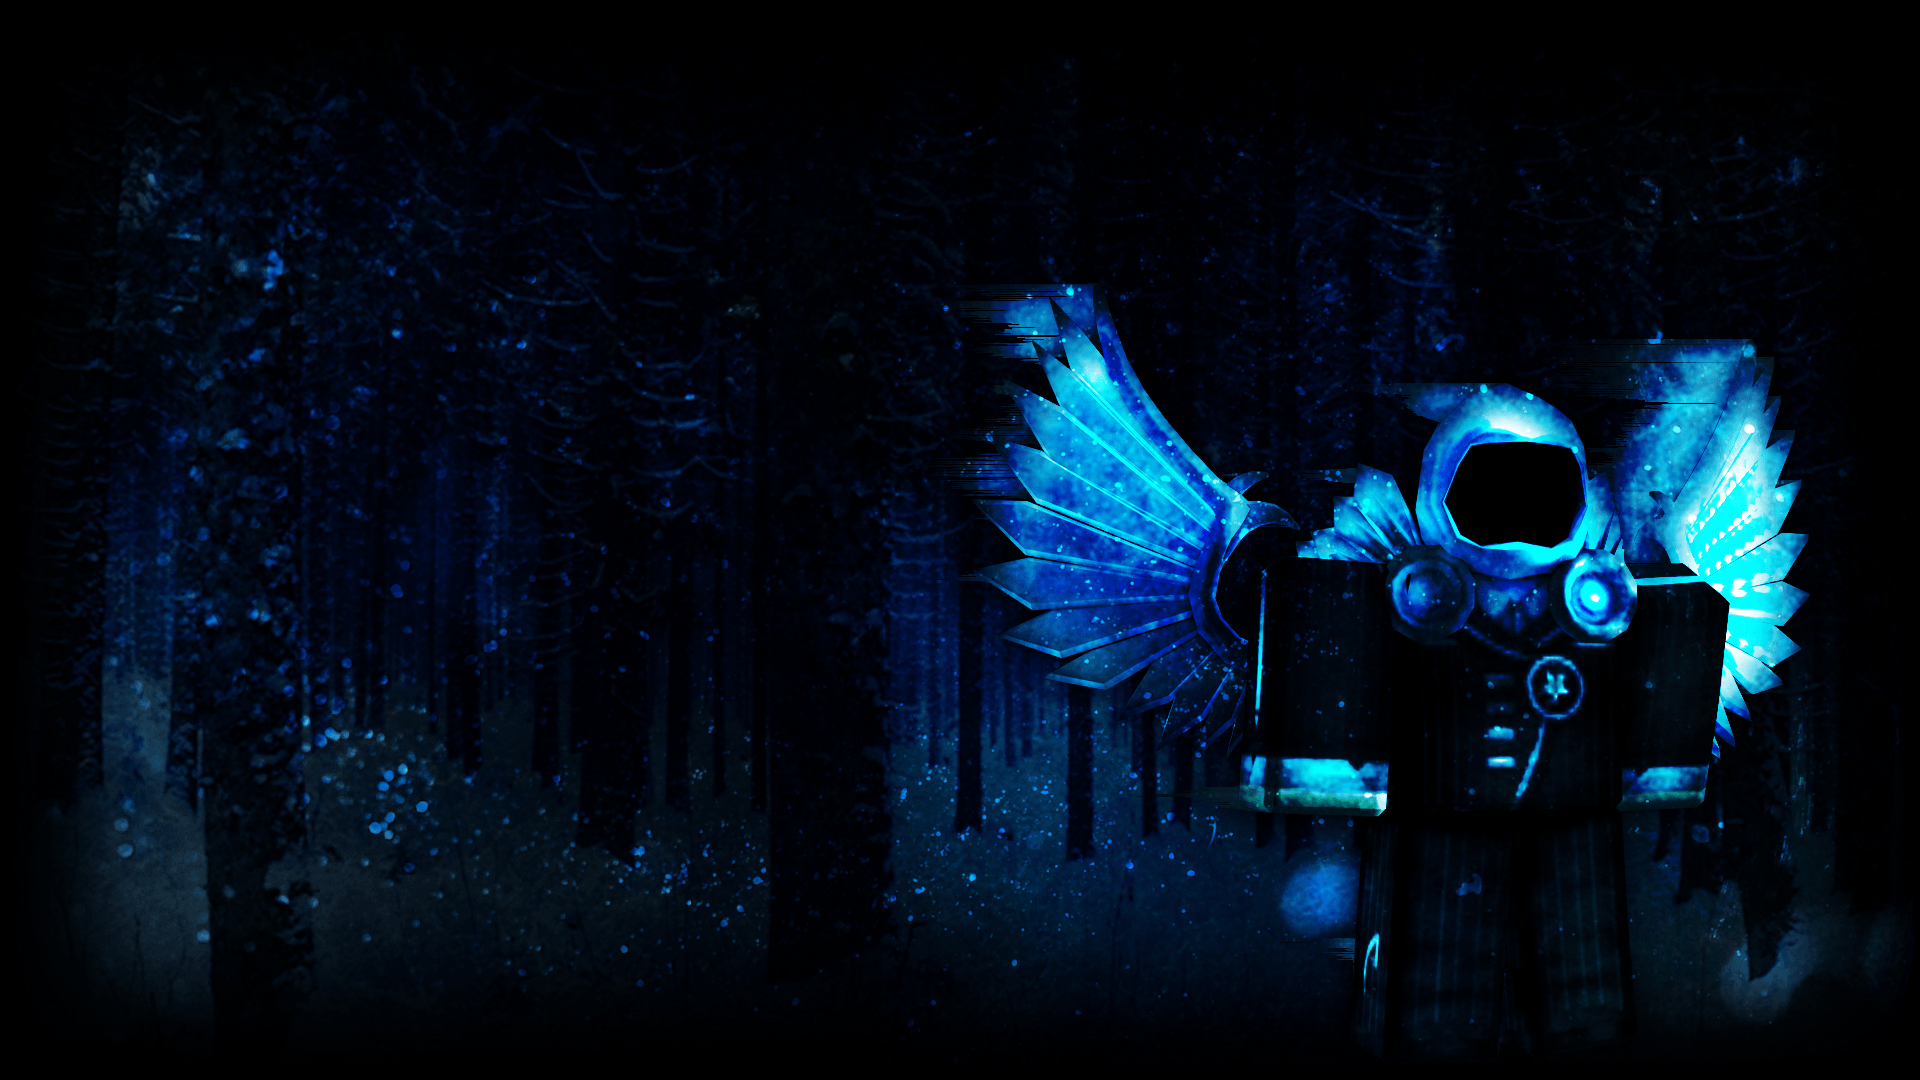 [ROBLOX GFX] by Flamingst on DeviantArt